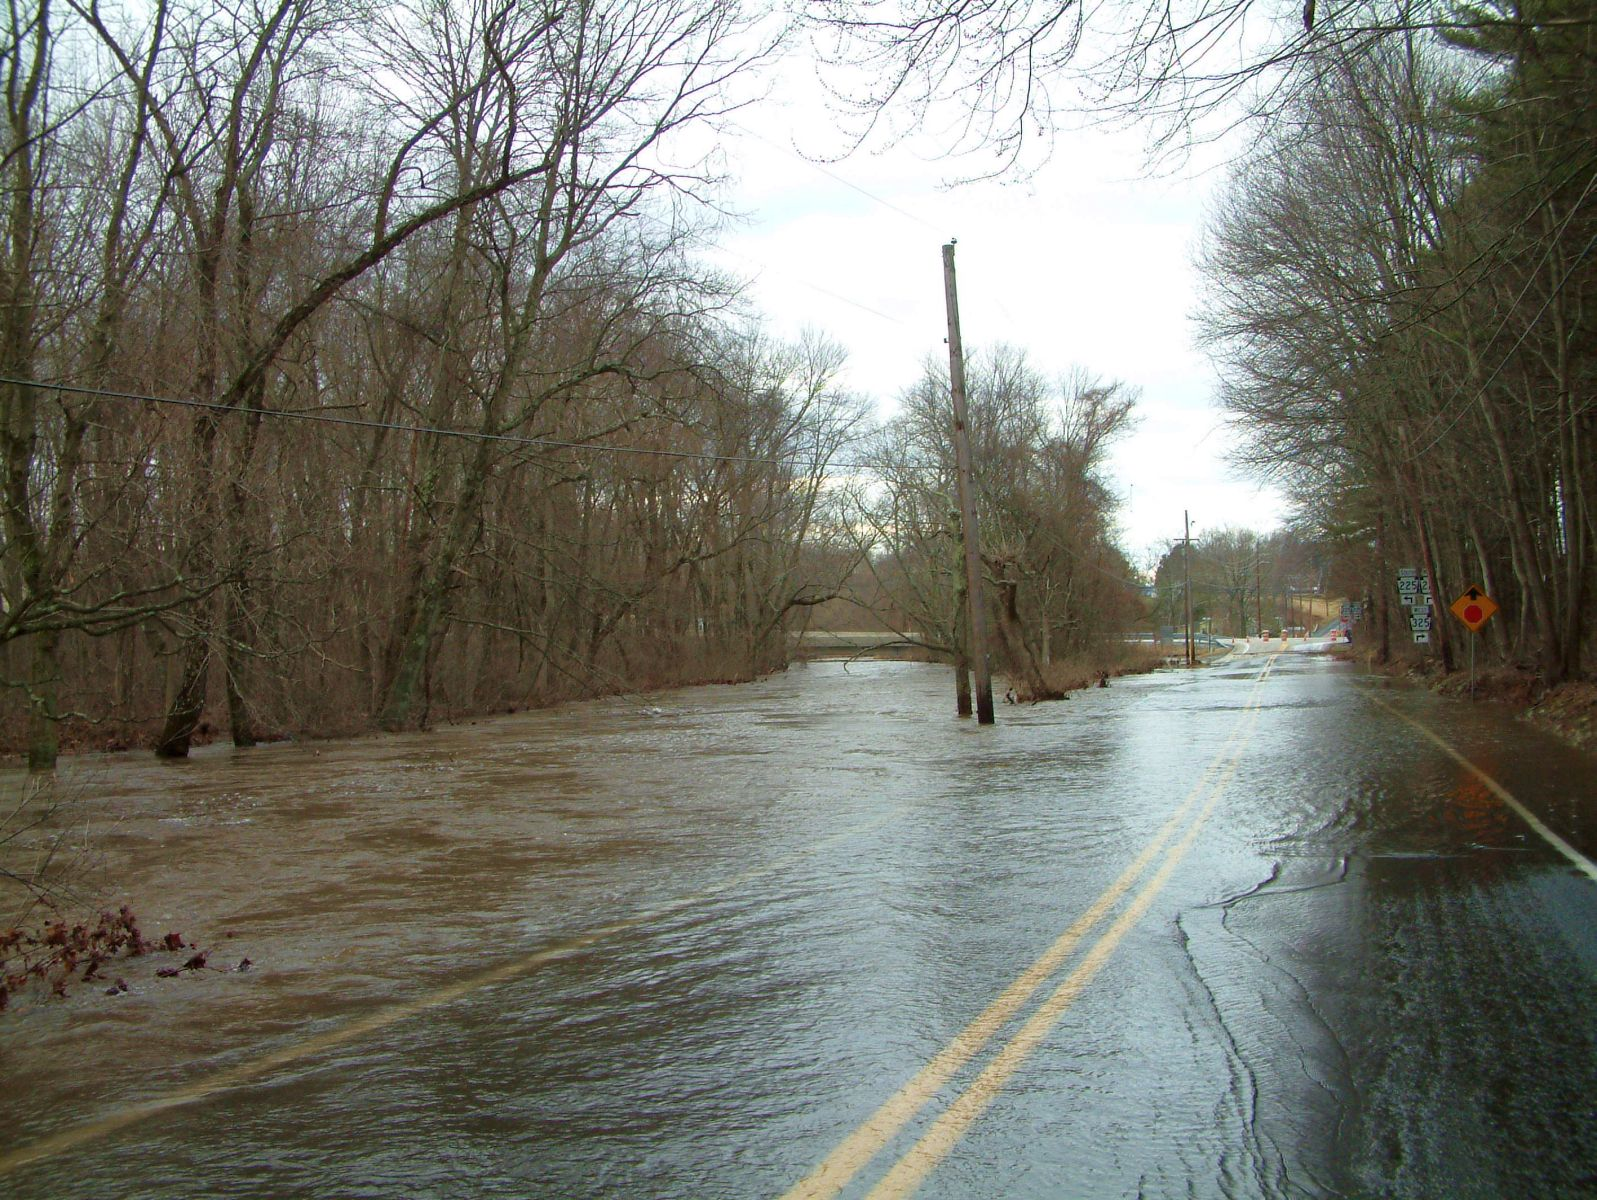 The end of the flooded Clarks Valley Road